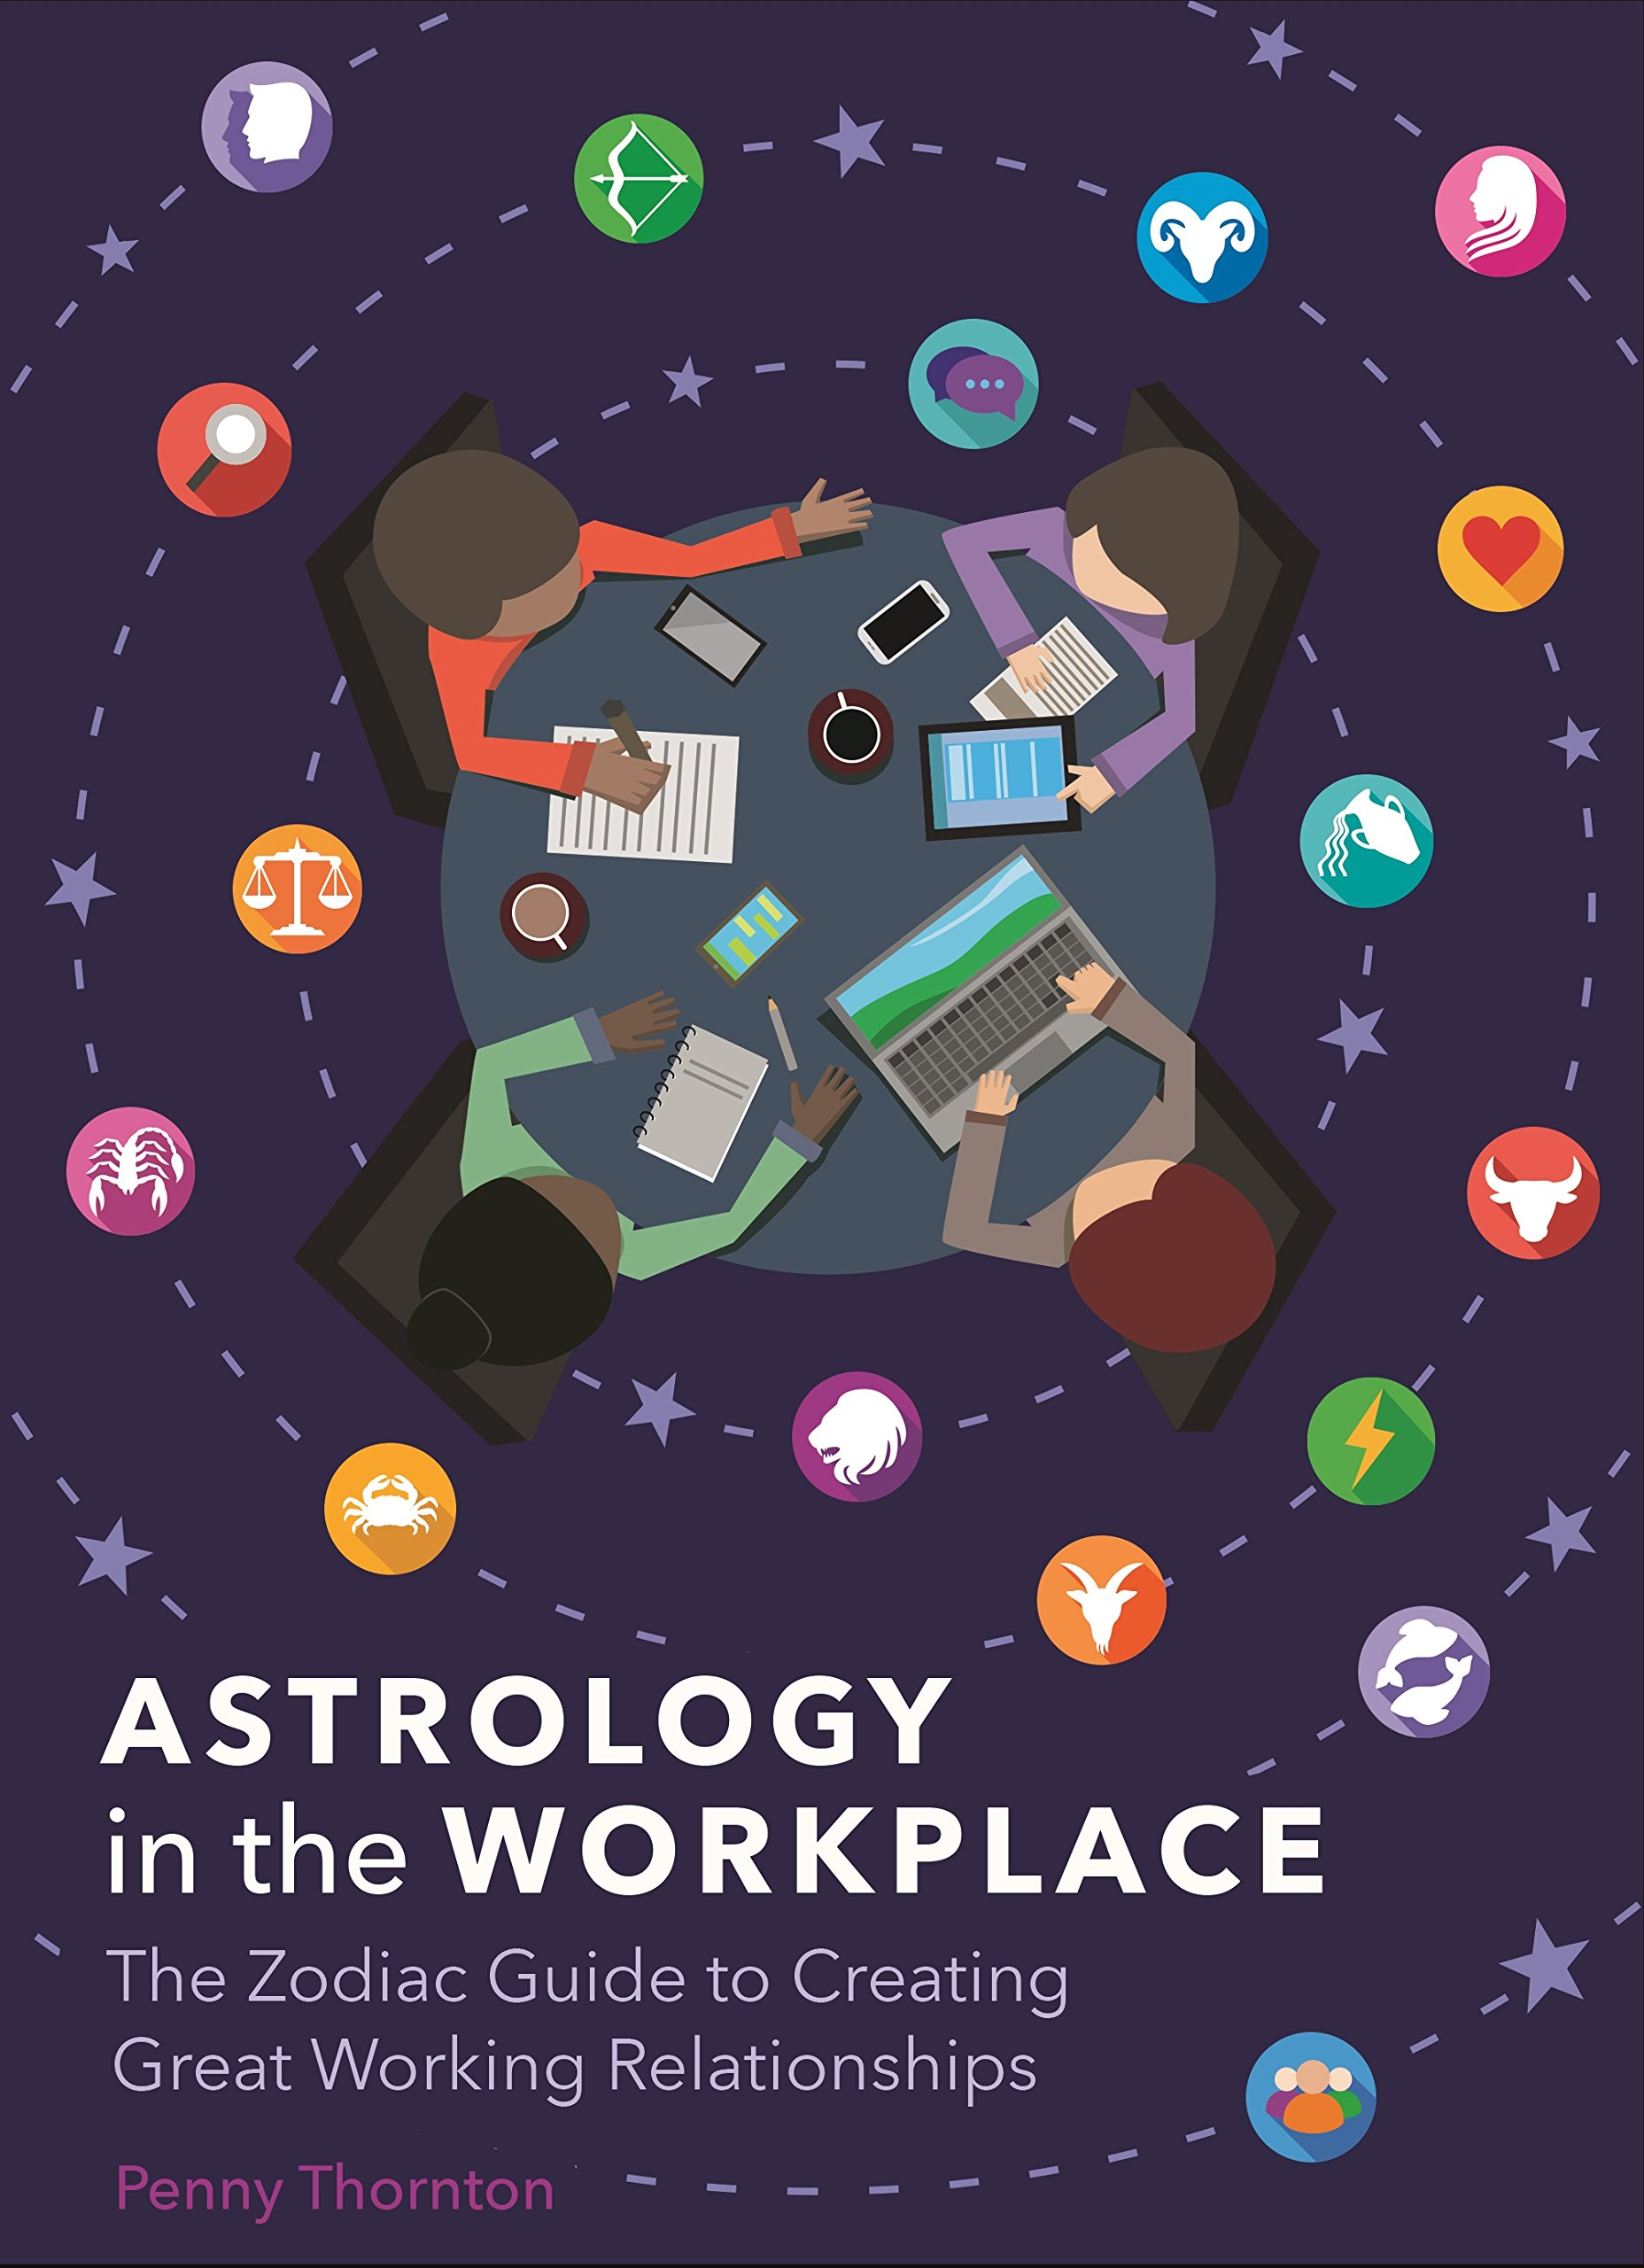 Astrology in the Workplace: The Zodiac Guide to Creating Great Working  Relationships: Amazon.co.uk: Thornton, Penny: 9781788285841: Books